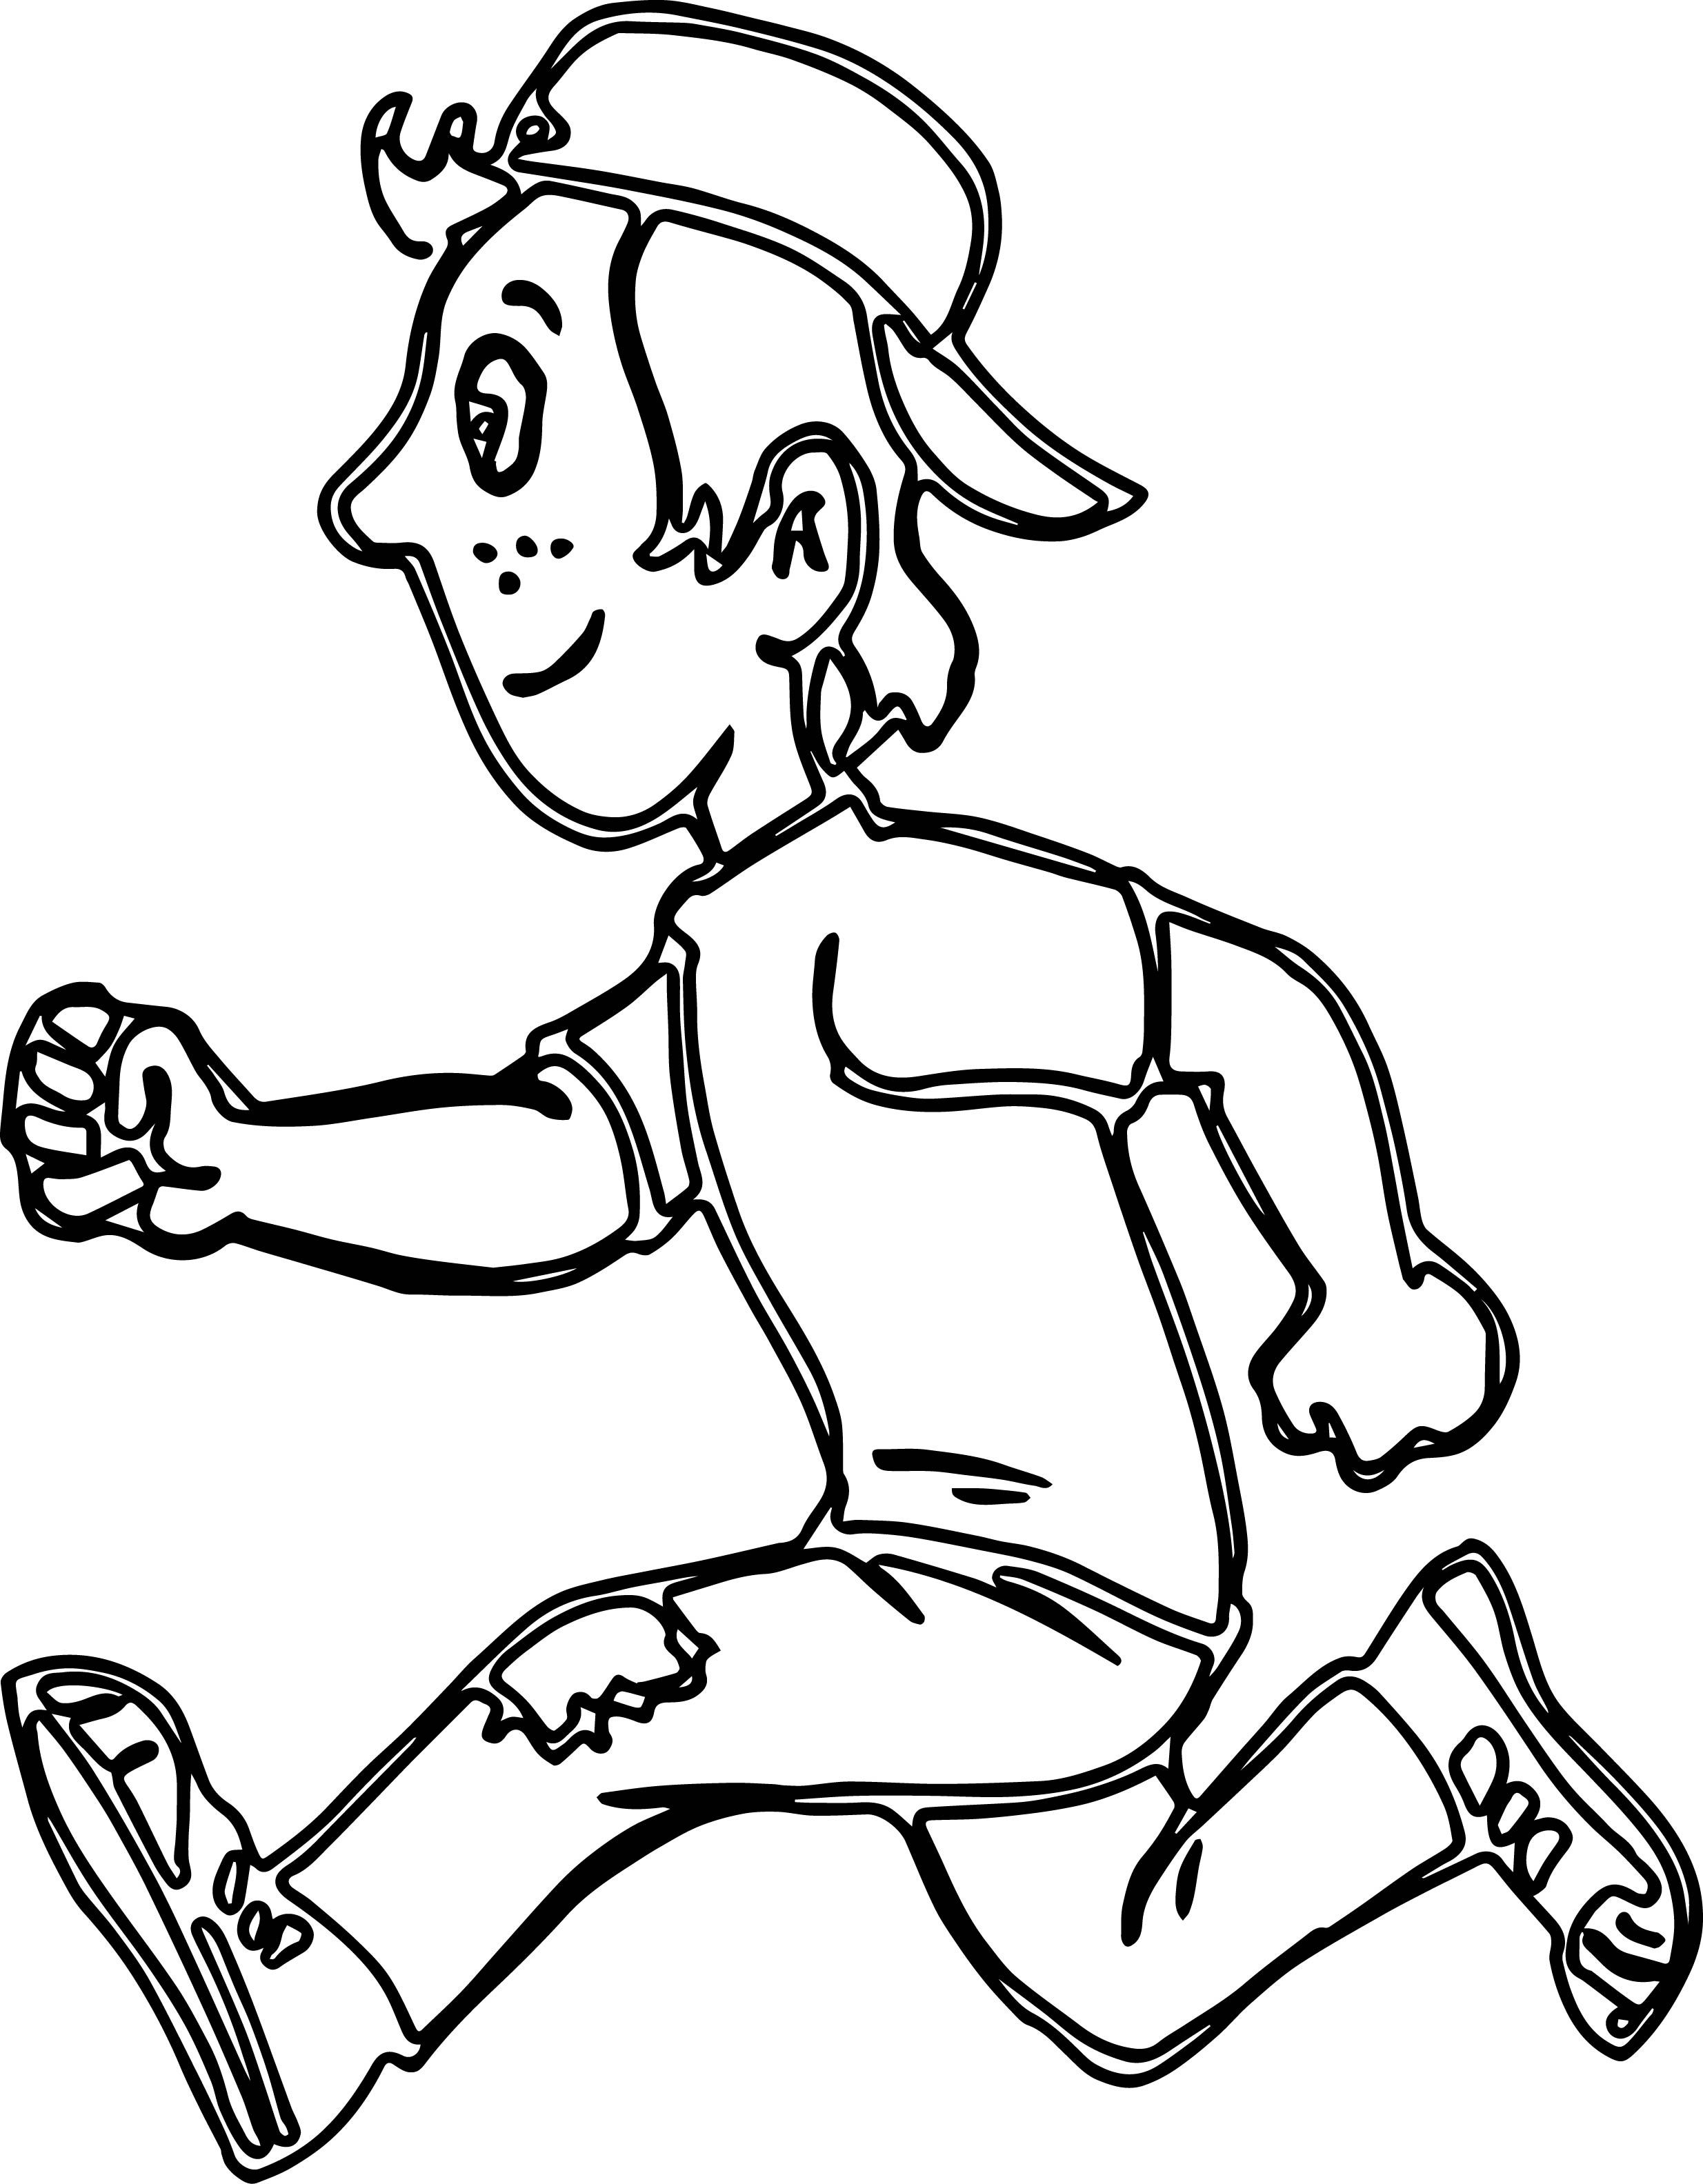 Awesome Running Boy Coloring Pages Coloring Pages For Boys Coloring Pages Color